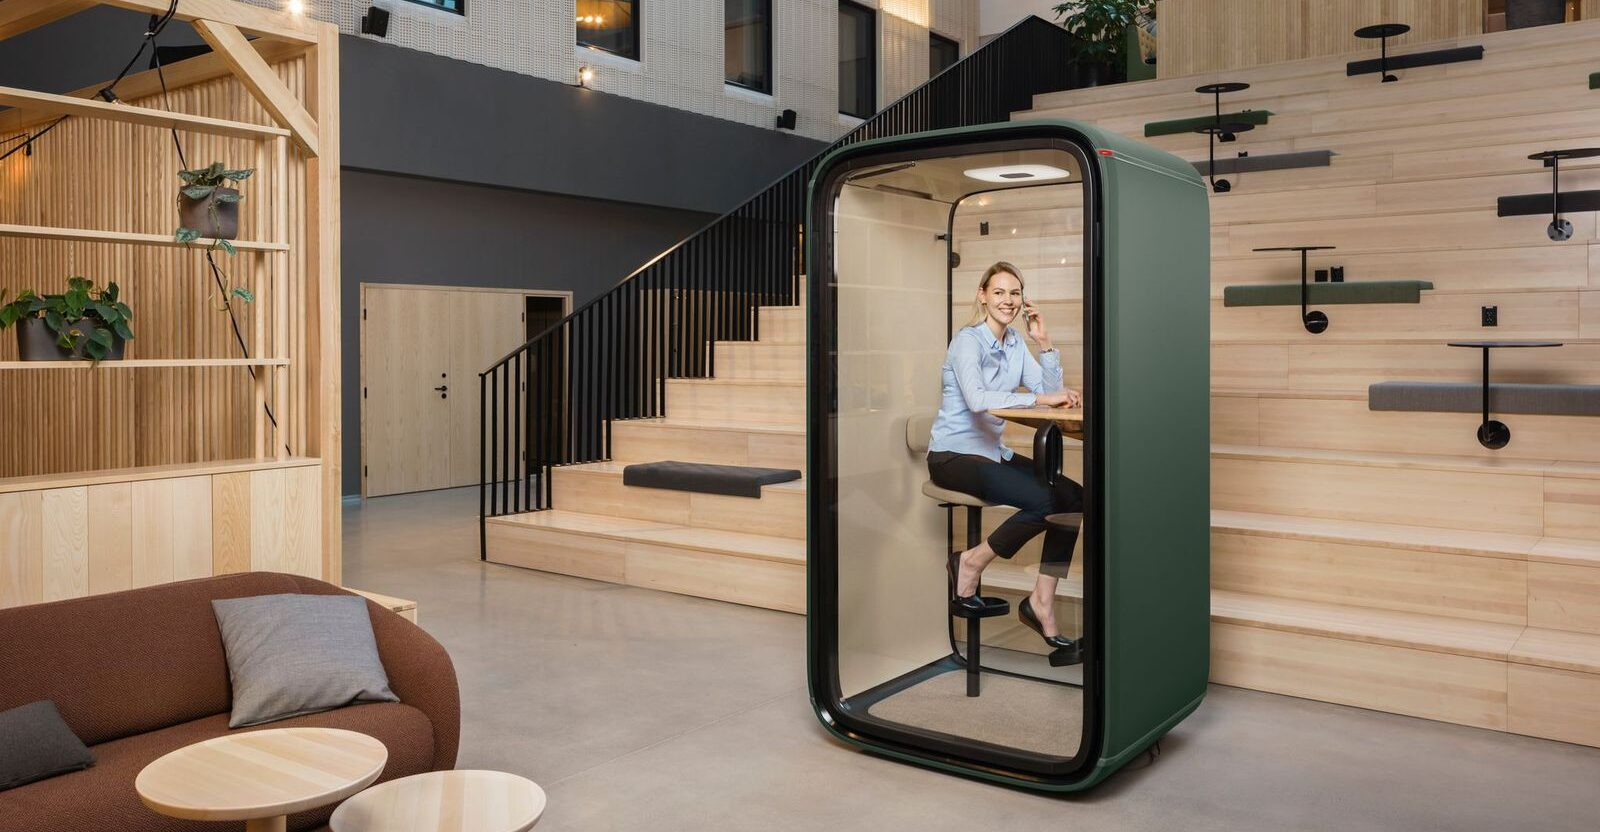 Introducing Framery One, distributed by Welltek, the world's first connected soundproof pod